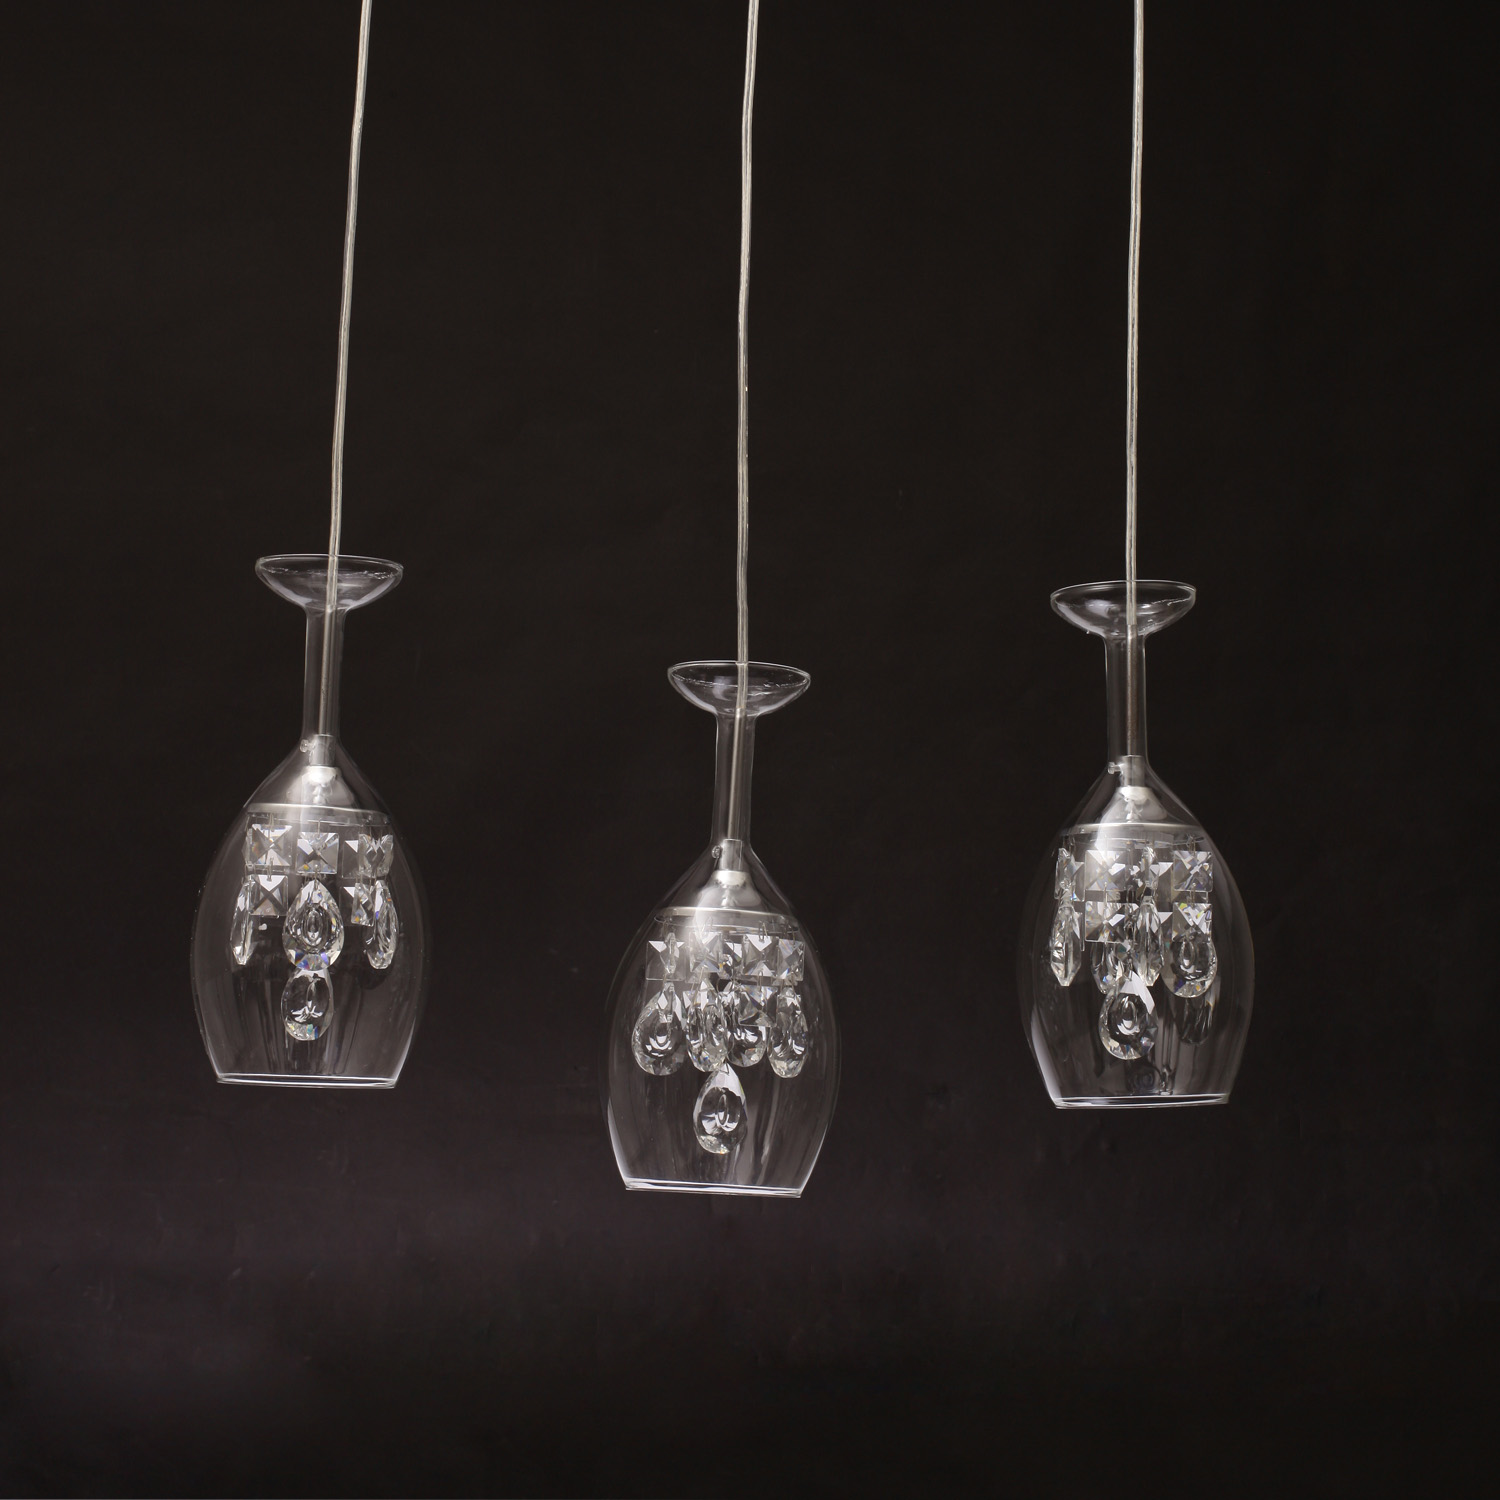 Modern cup led crystal ceiling lighting chandelier 3 for Contemporary chandeliers and pendants